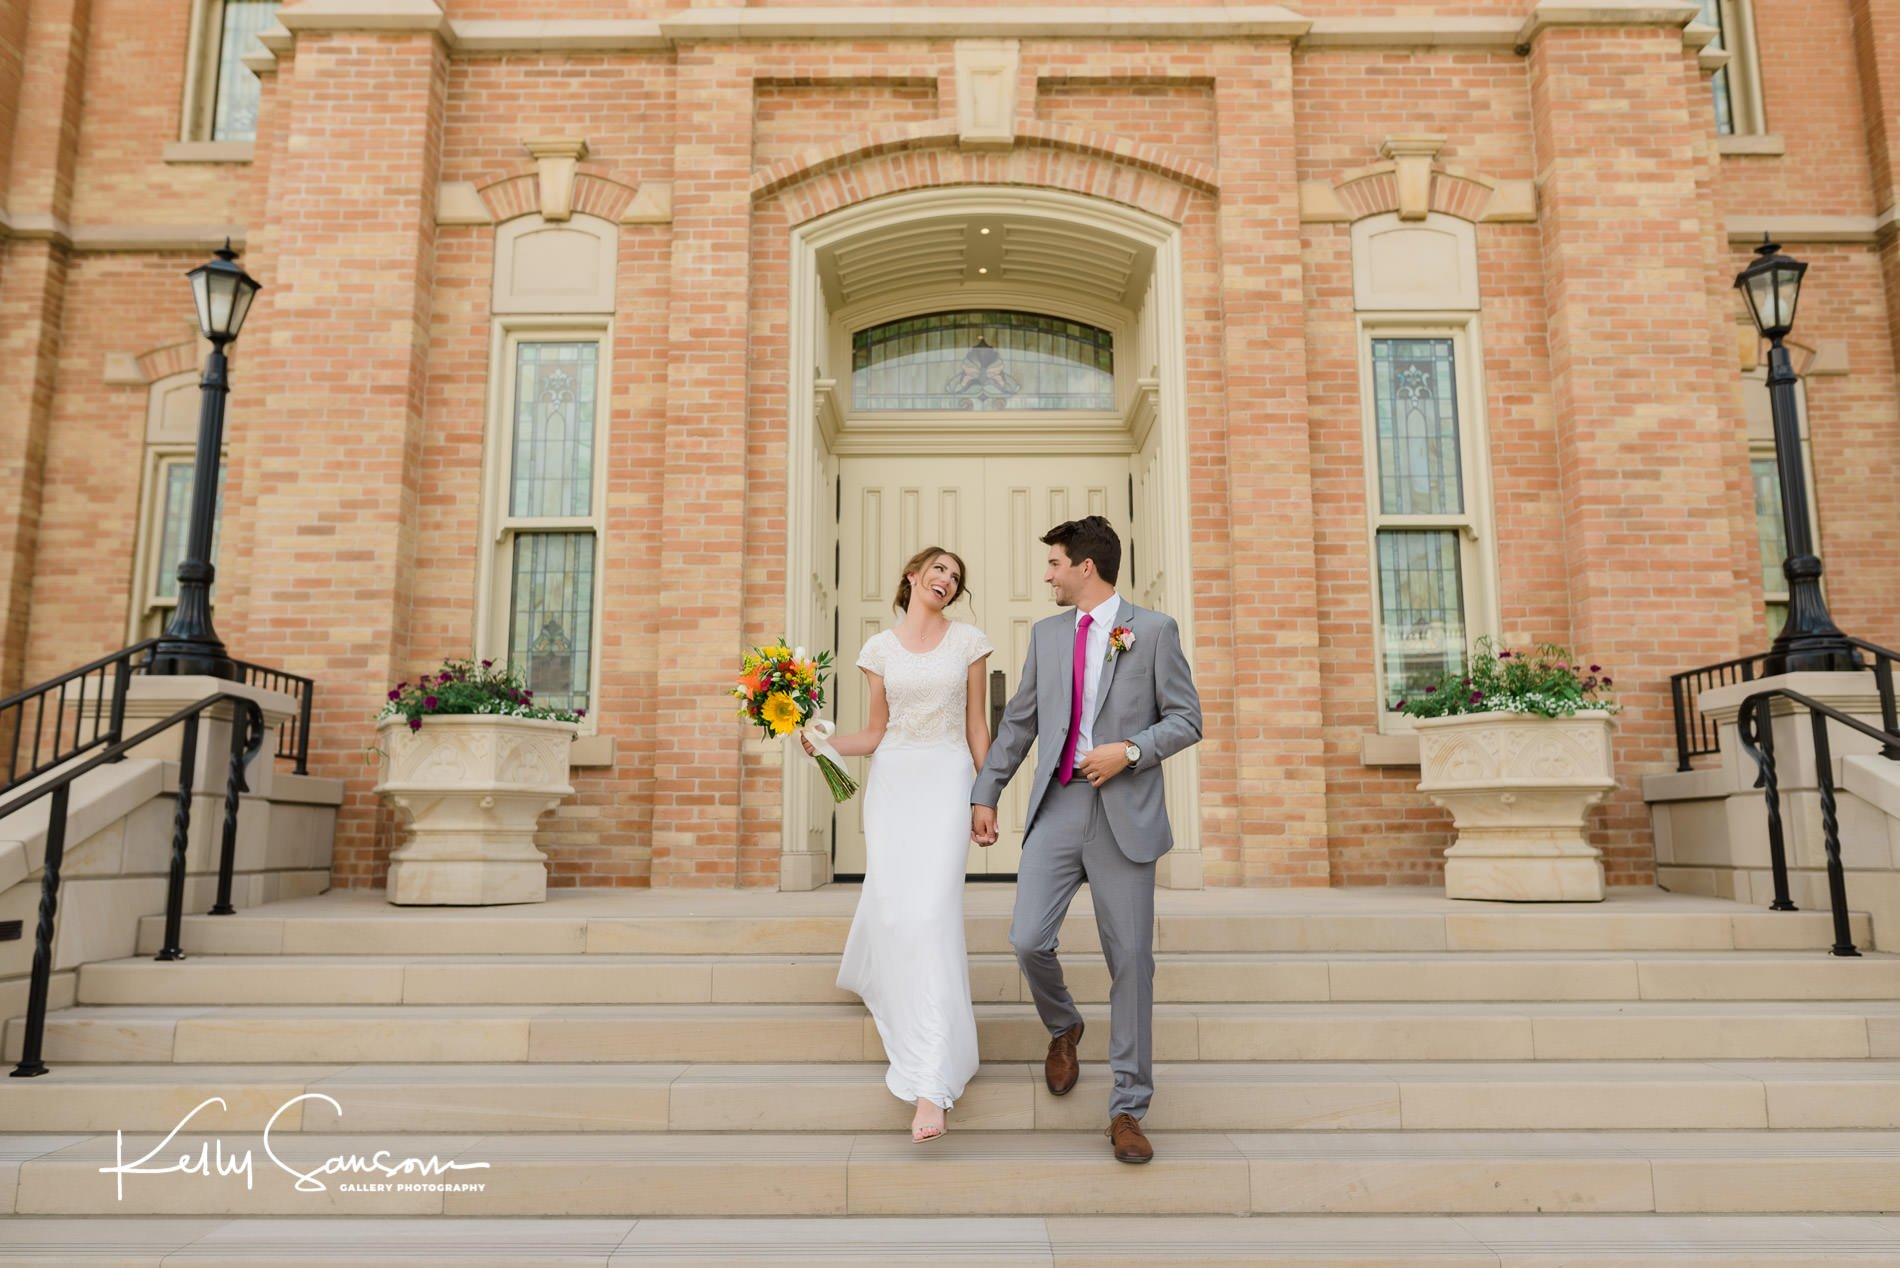 Bride and groom walking down the stairs holding hands in front of the provo city center lds temple.